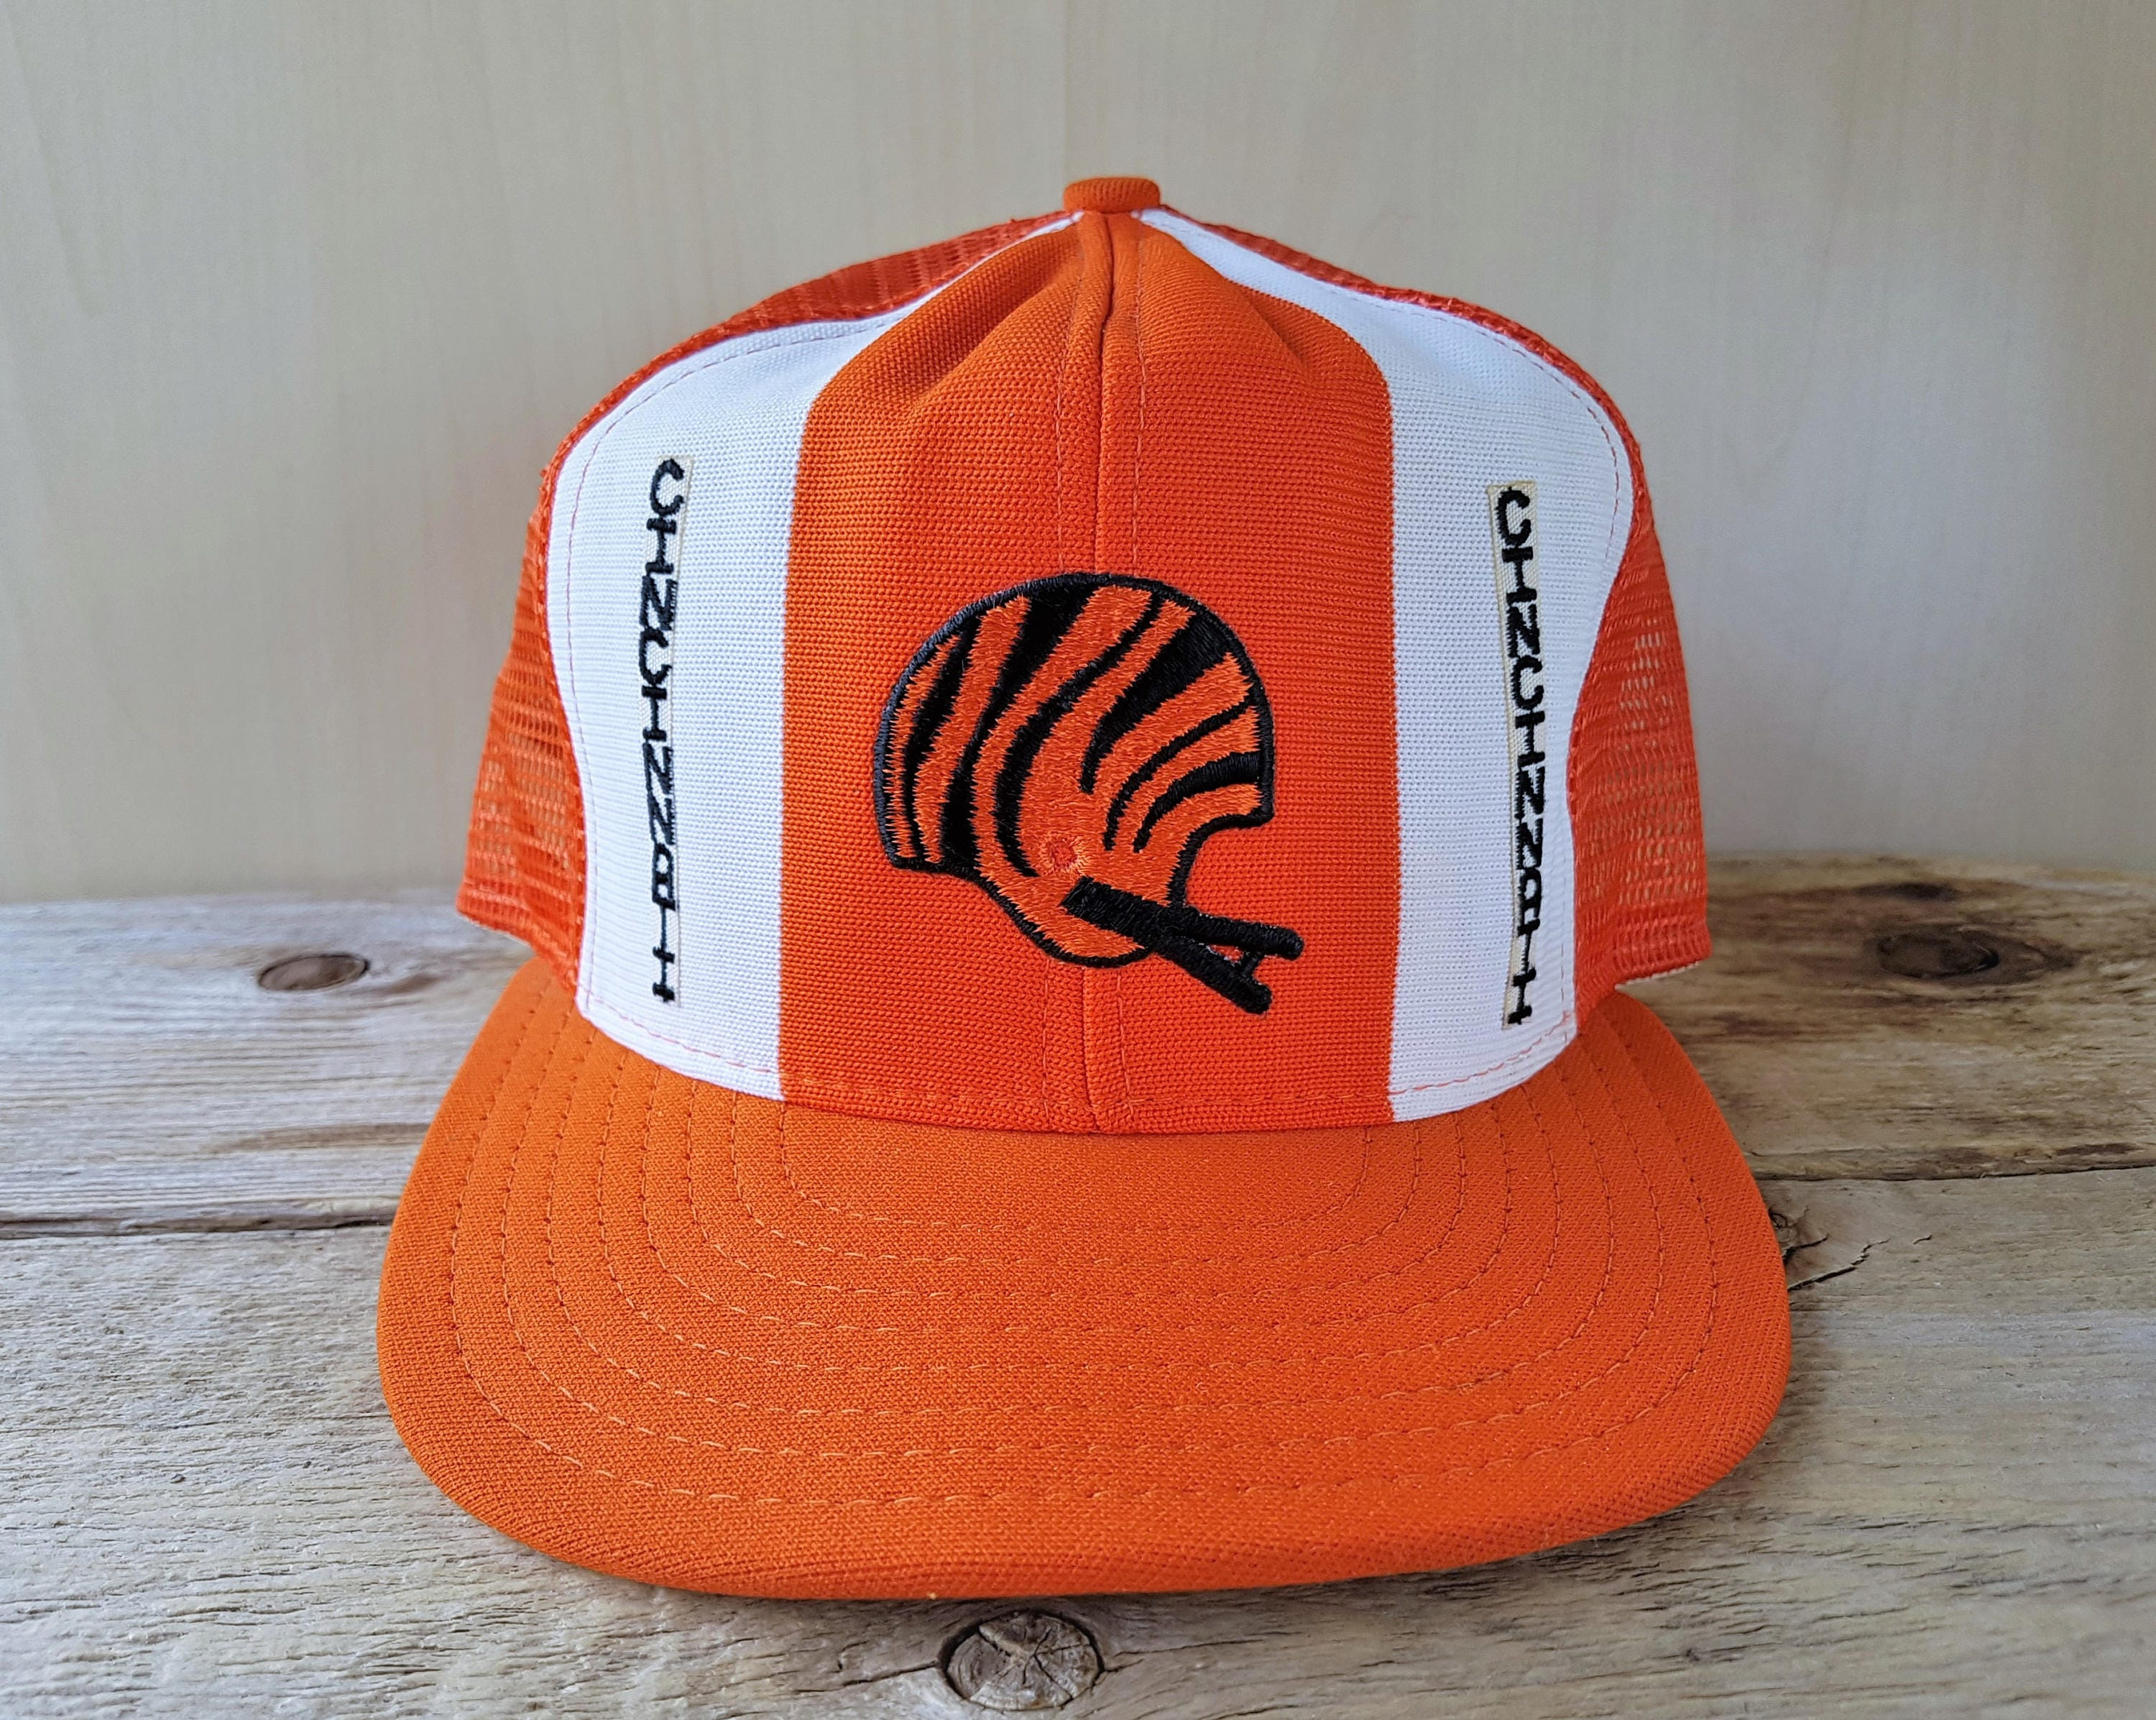 26ce334e4dd greece cincinnati bengals football team vintage 80s lucky stripes official  licensed ajd large snapback hat orange